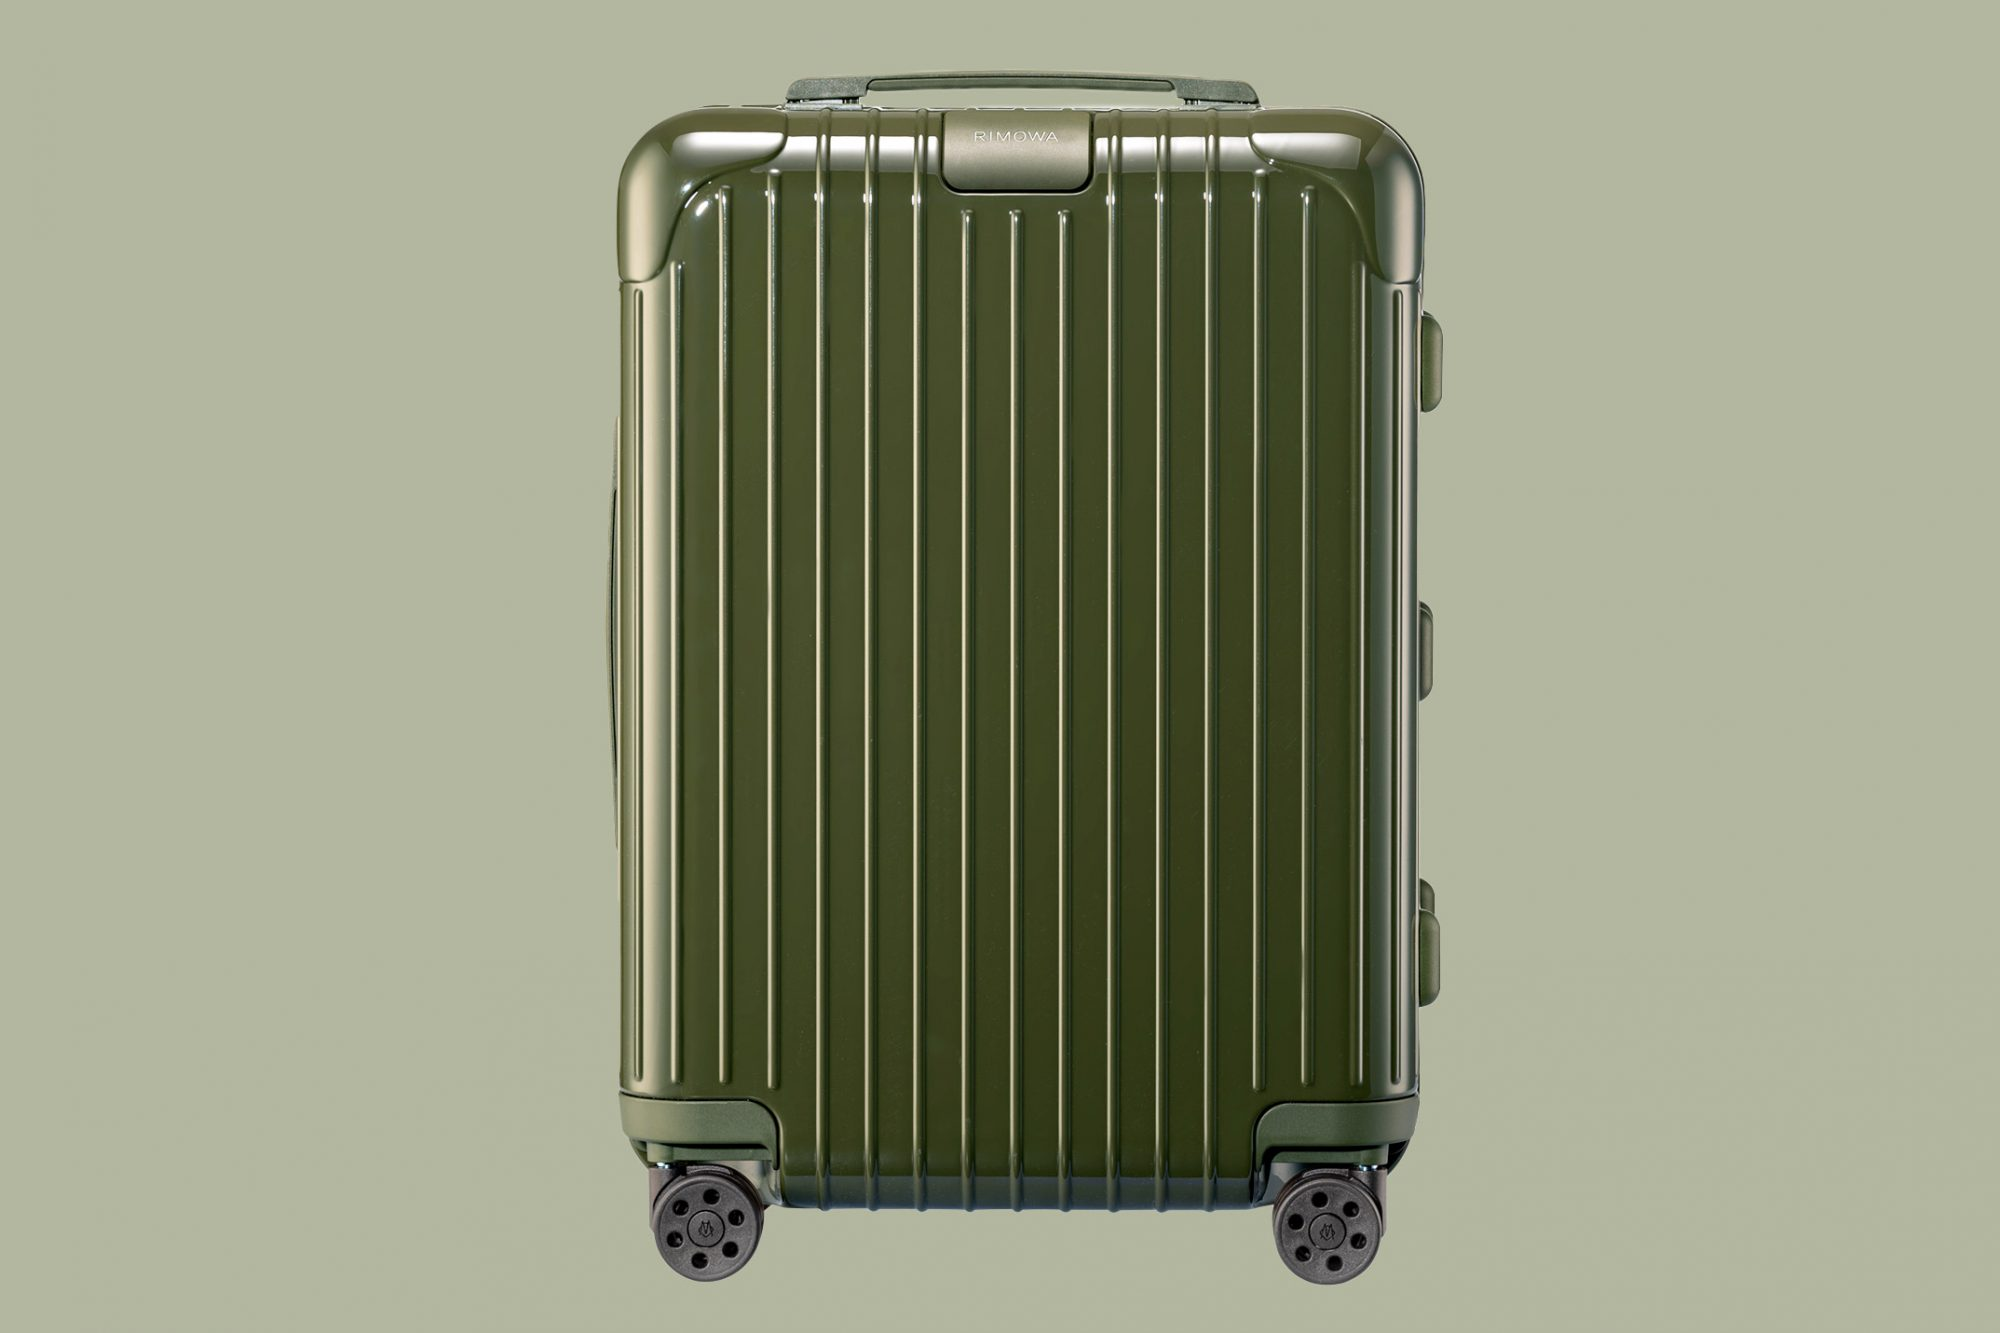 green rimowa cabin carry on suitcase